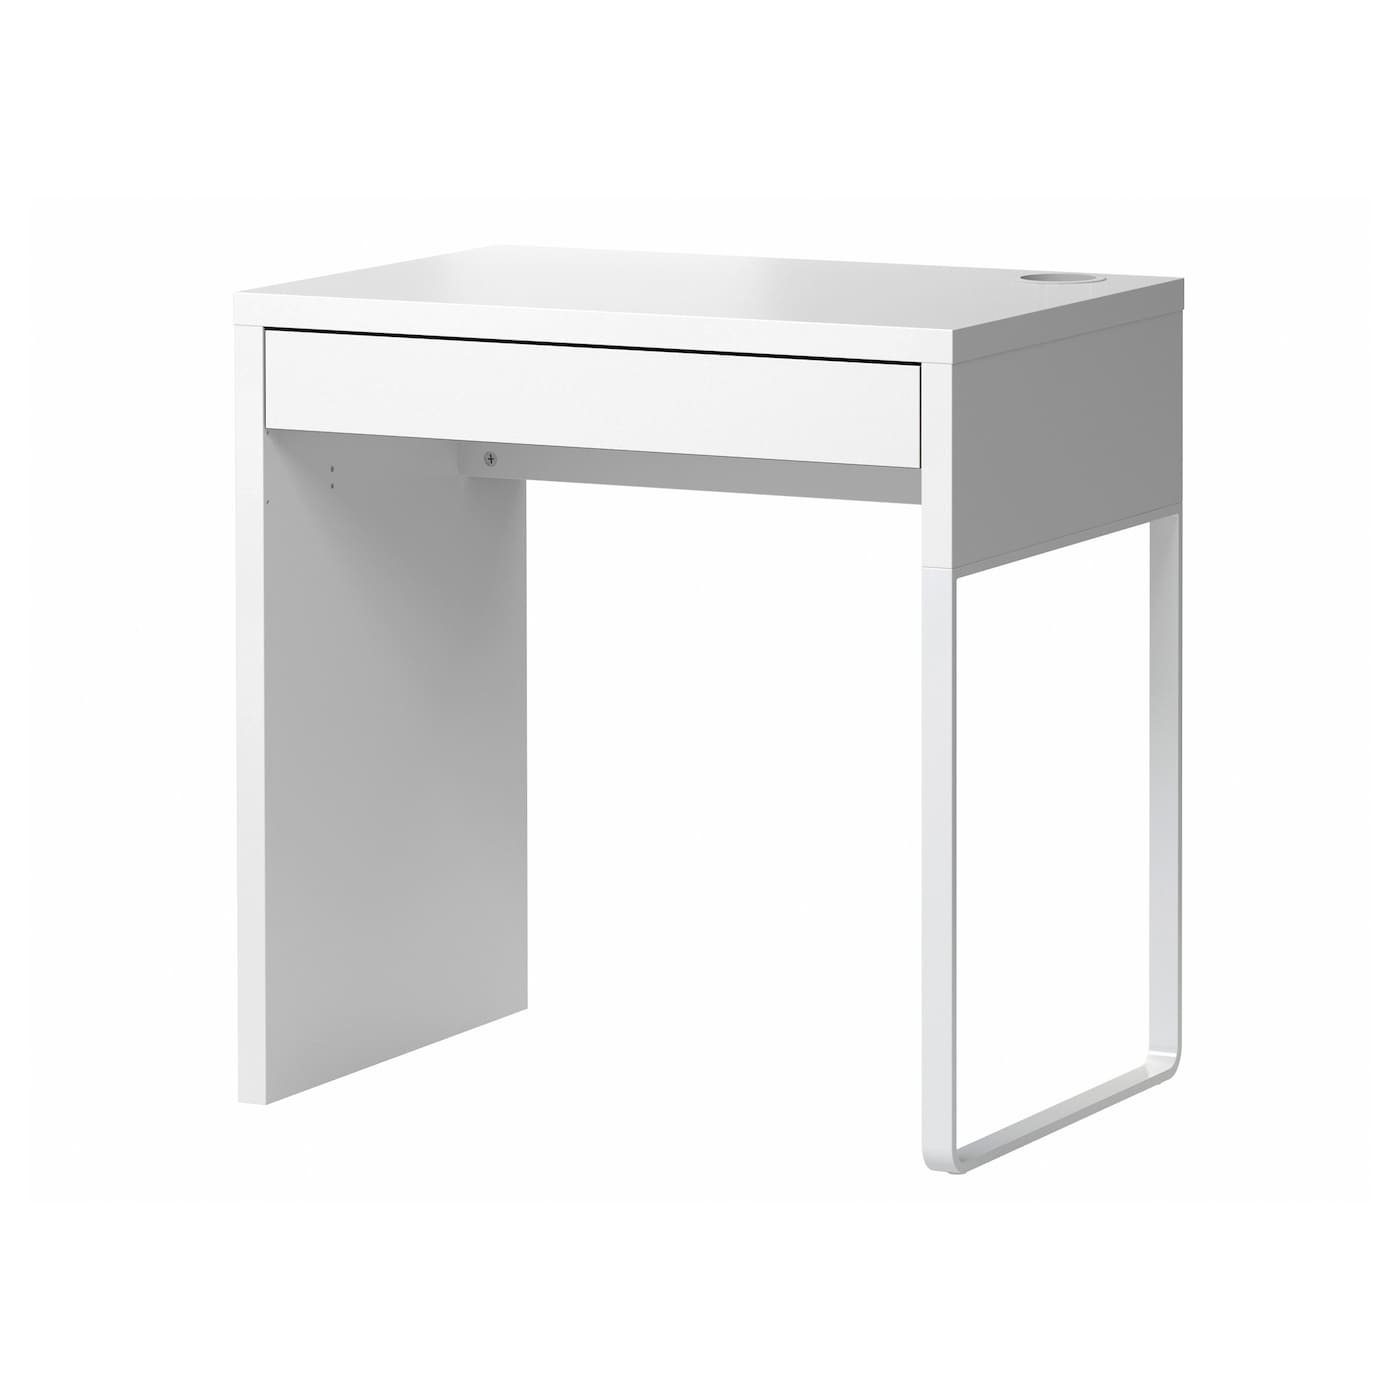 Ikea Micke Desk You Can Mount The Legs To Right Or Left According